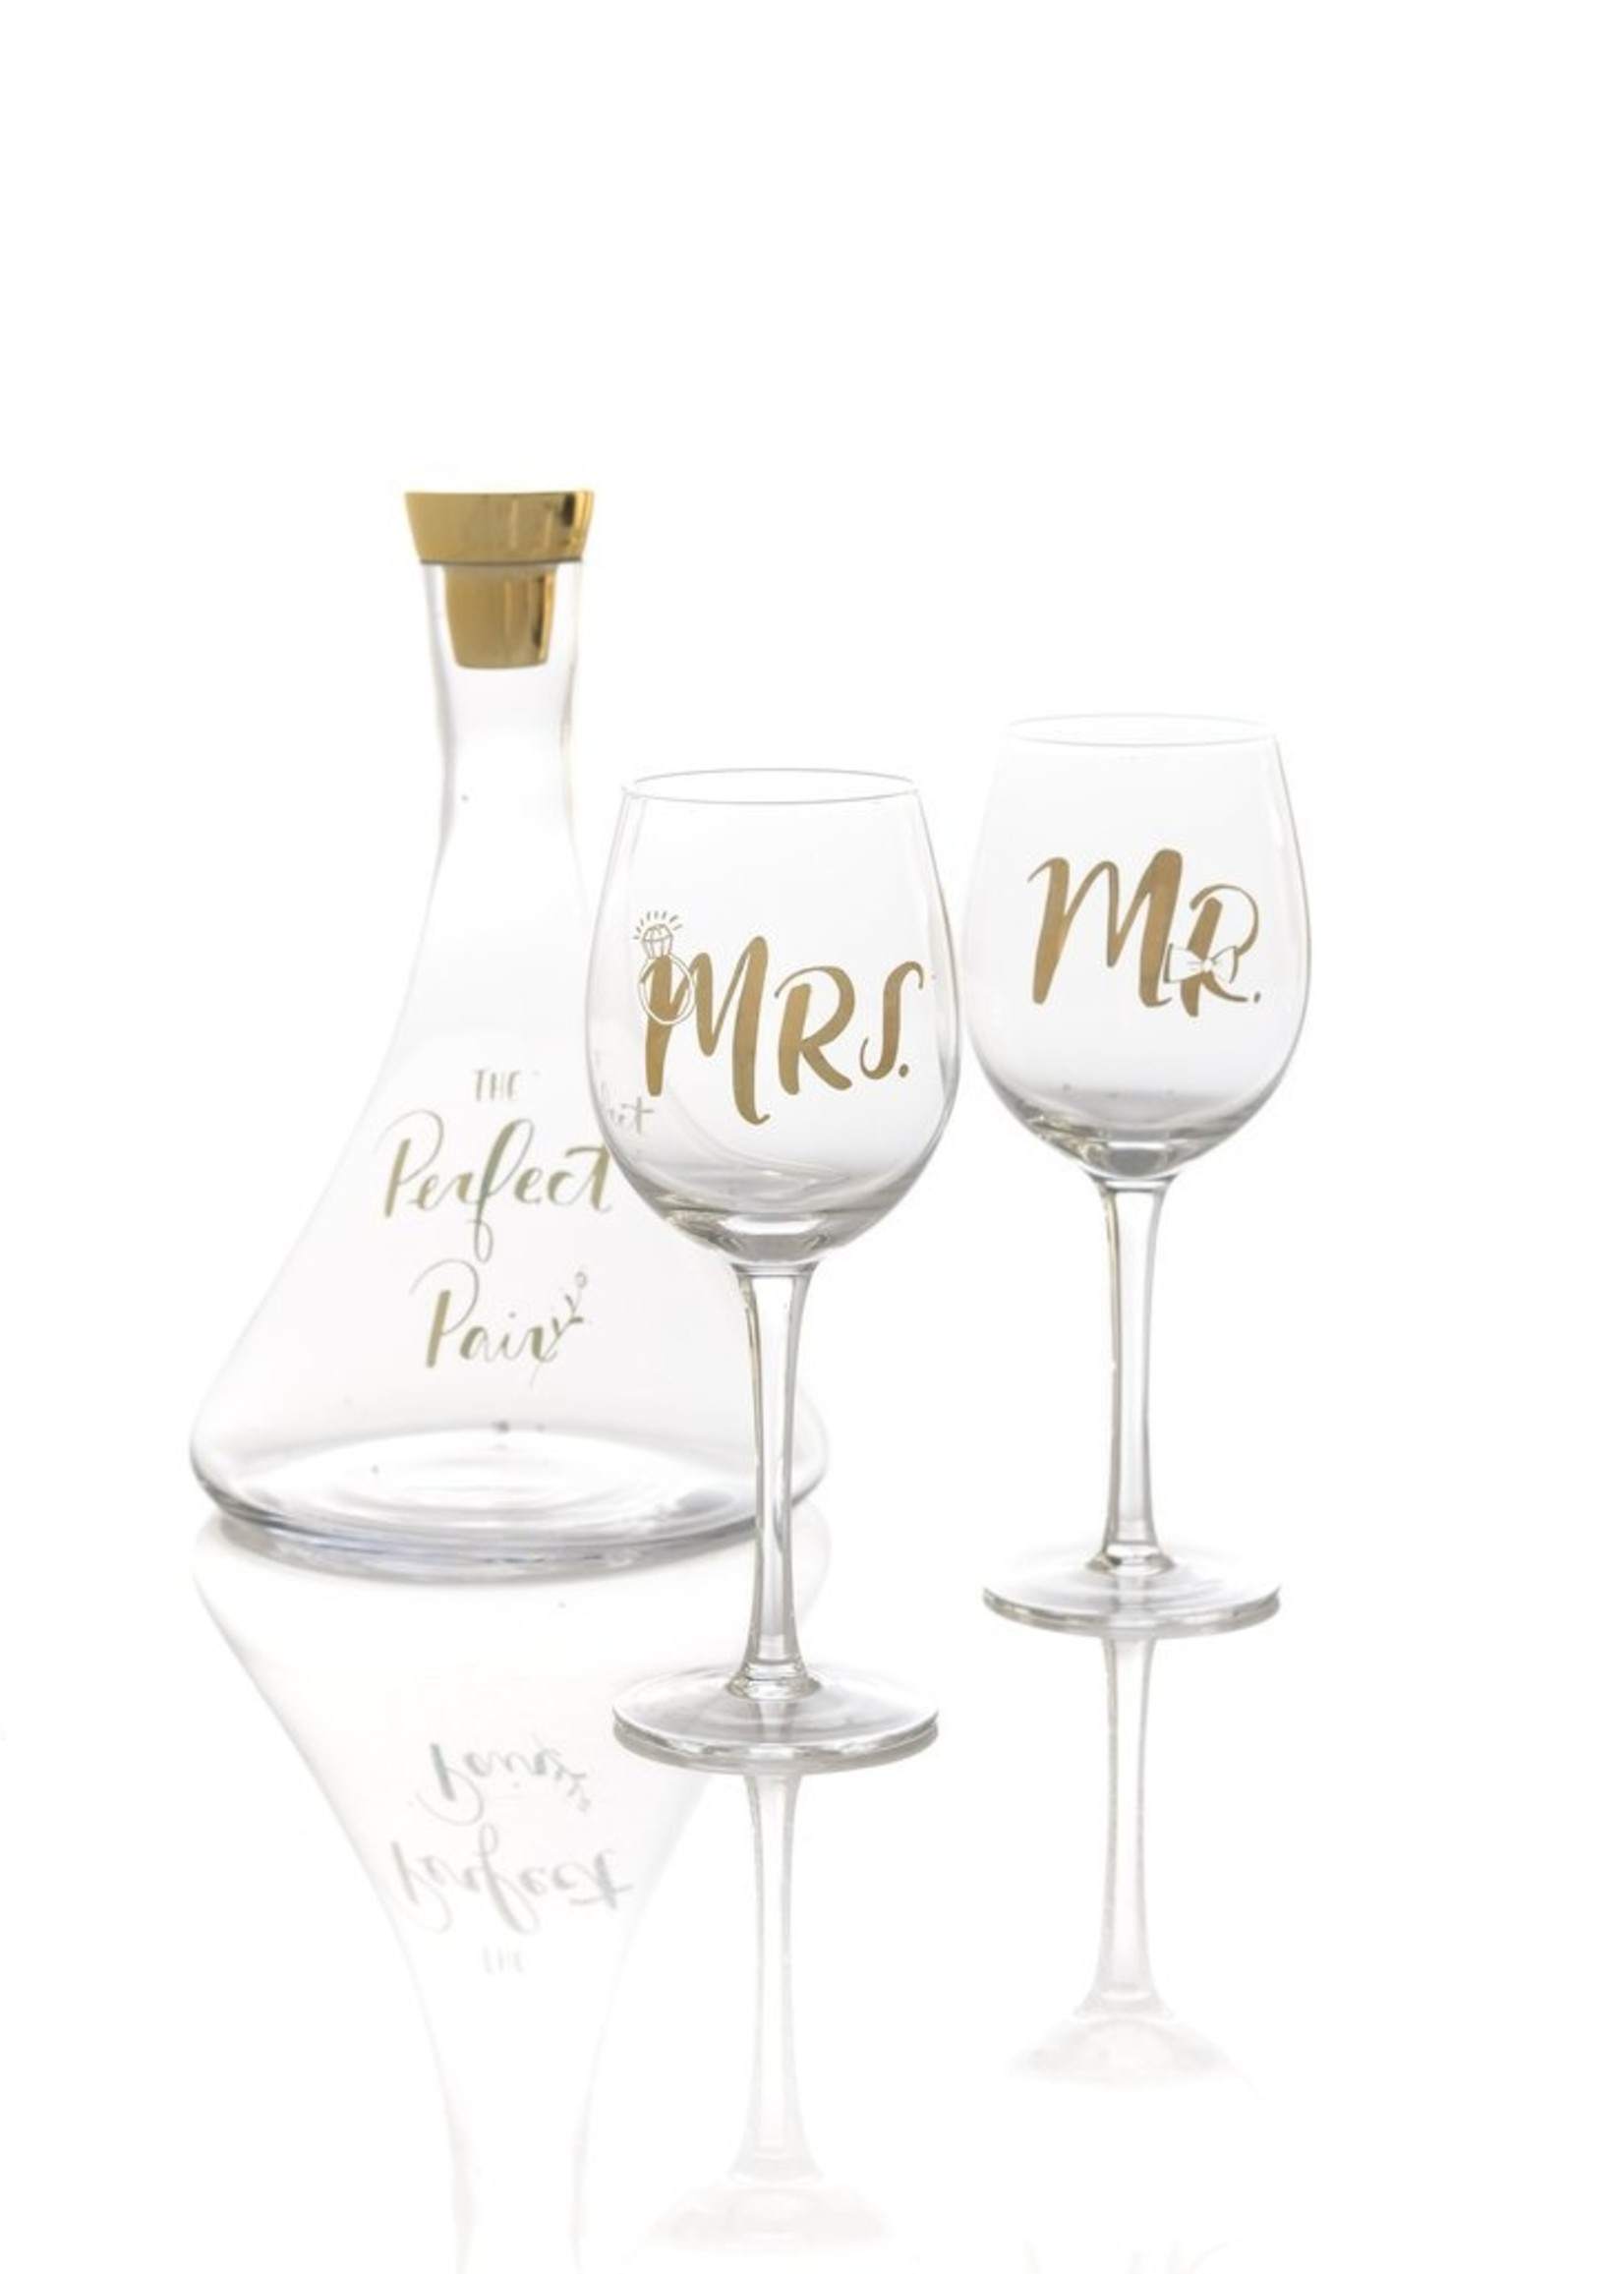 The Perfect Pair Decanter and Glass Set